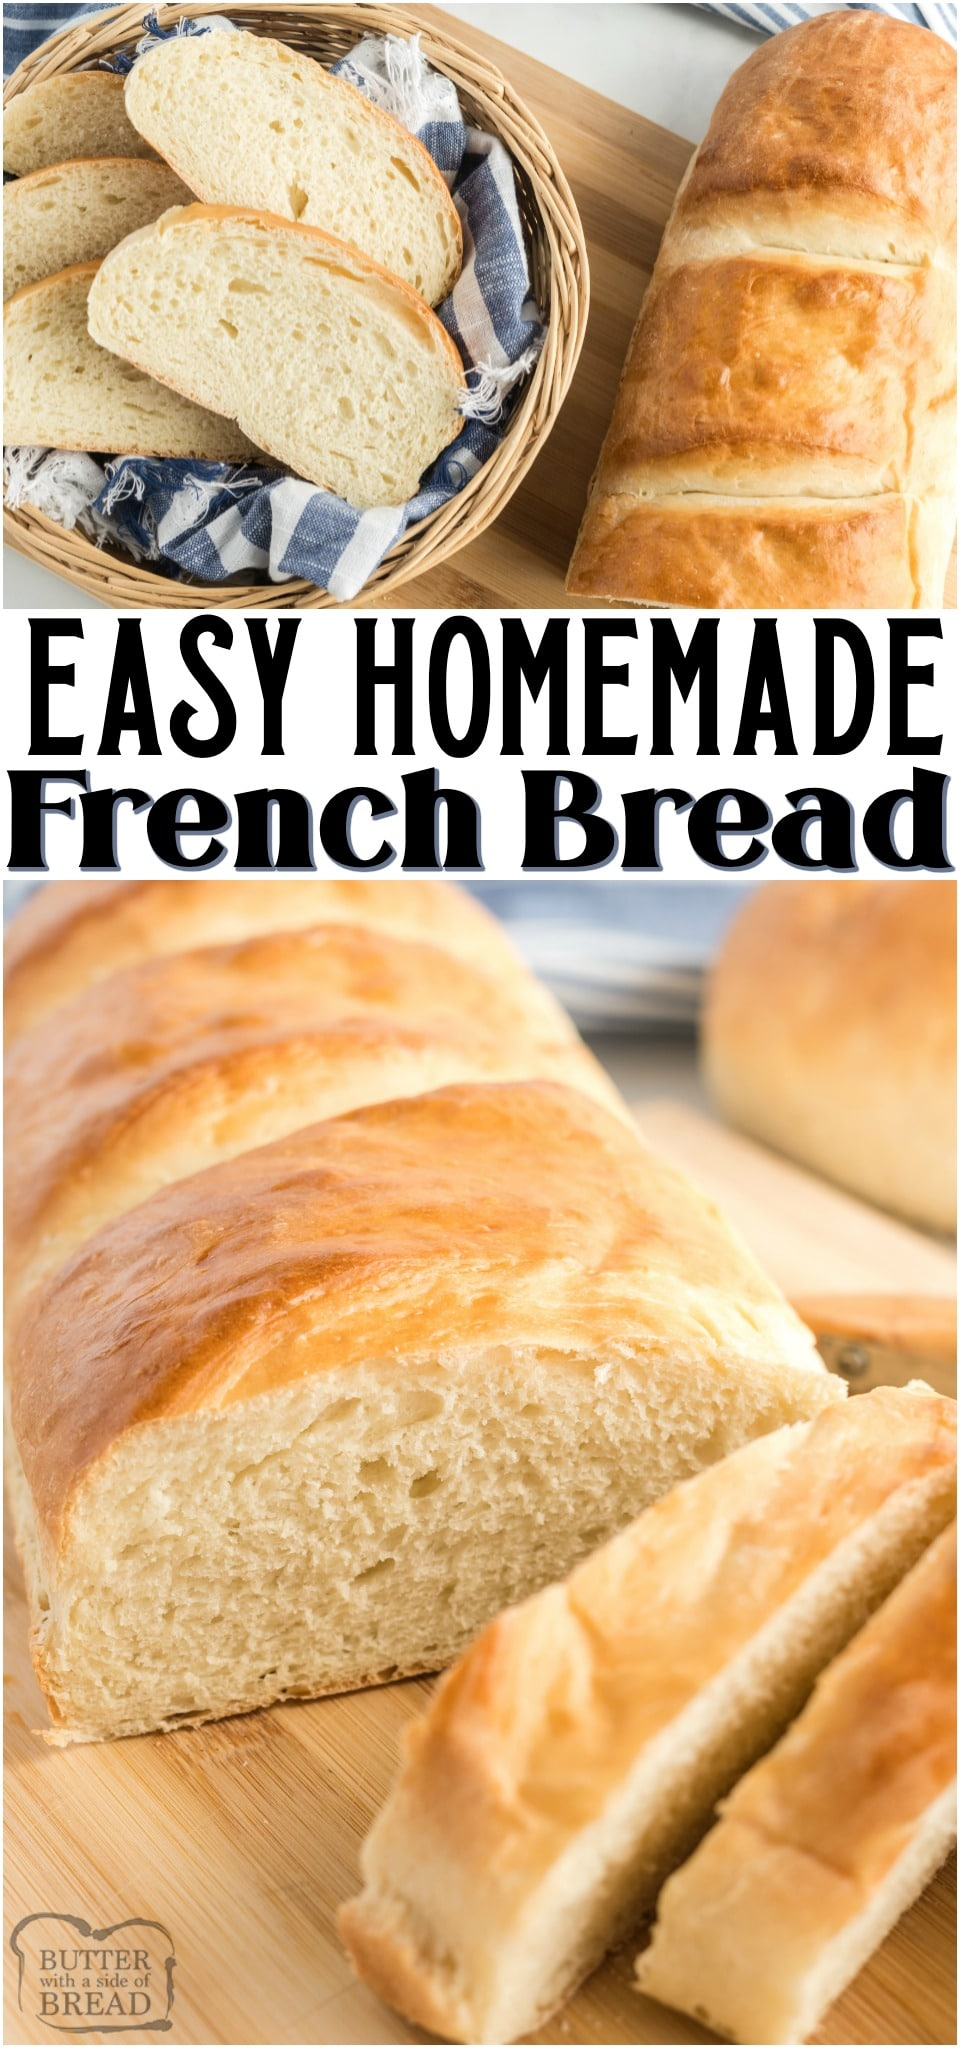 This French Bread recipe is a simple and easy one that will give you two gorgeous loaves of homemade French Bread in under 2 hours! It's the perfect way to make homemade bread for dinner! #bread #homemade #FrenchBread #breadrecipe #baking #yeast #recipe from BUTTER WITH A SIDE OF BREAD